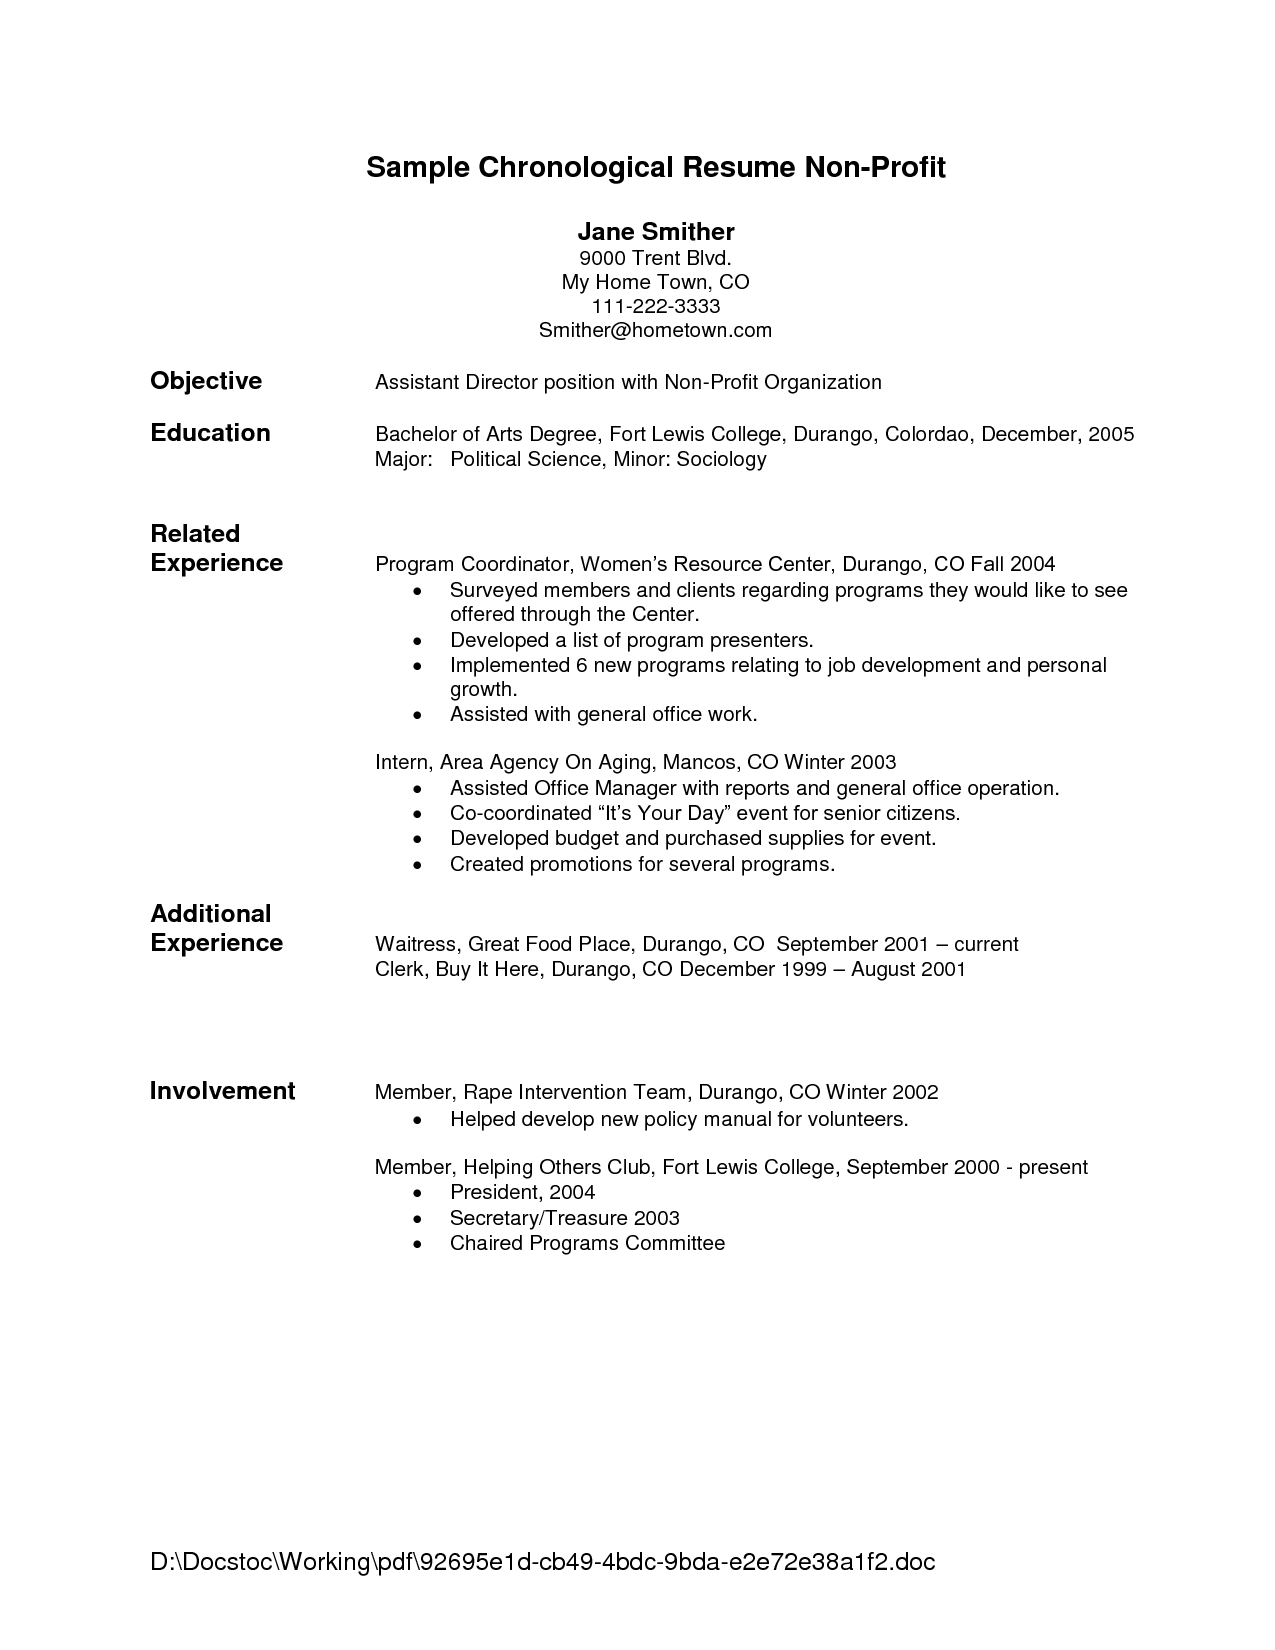 Sample Resume Objective Statement Waitress Resume Template Examples  Sample Resume Center